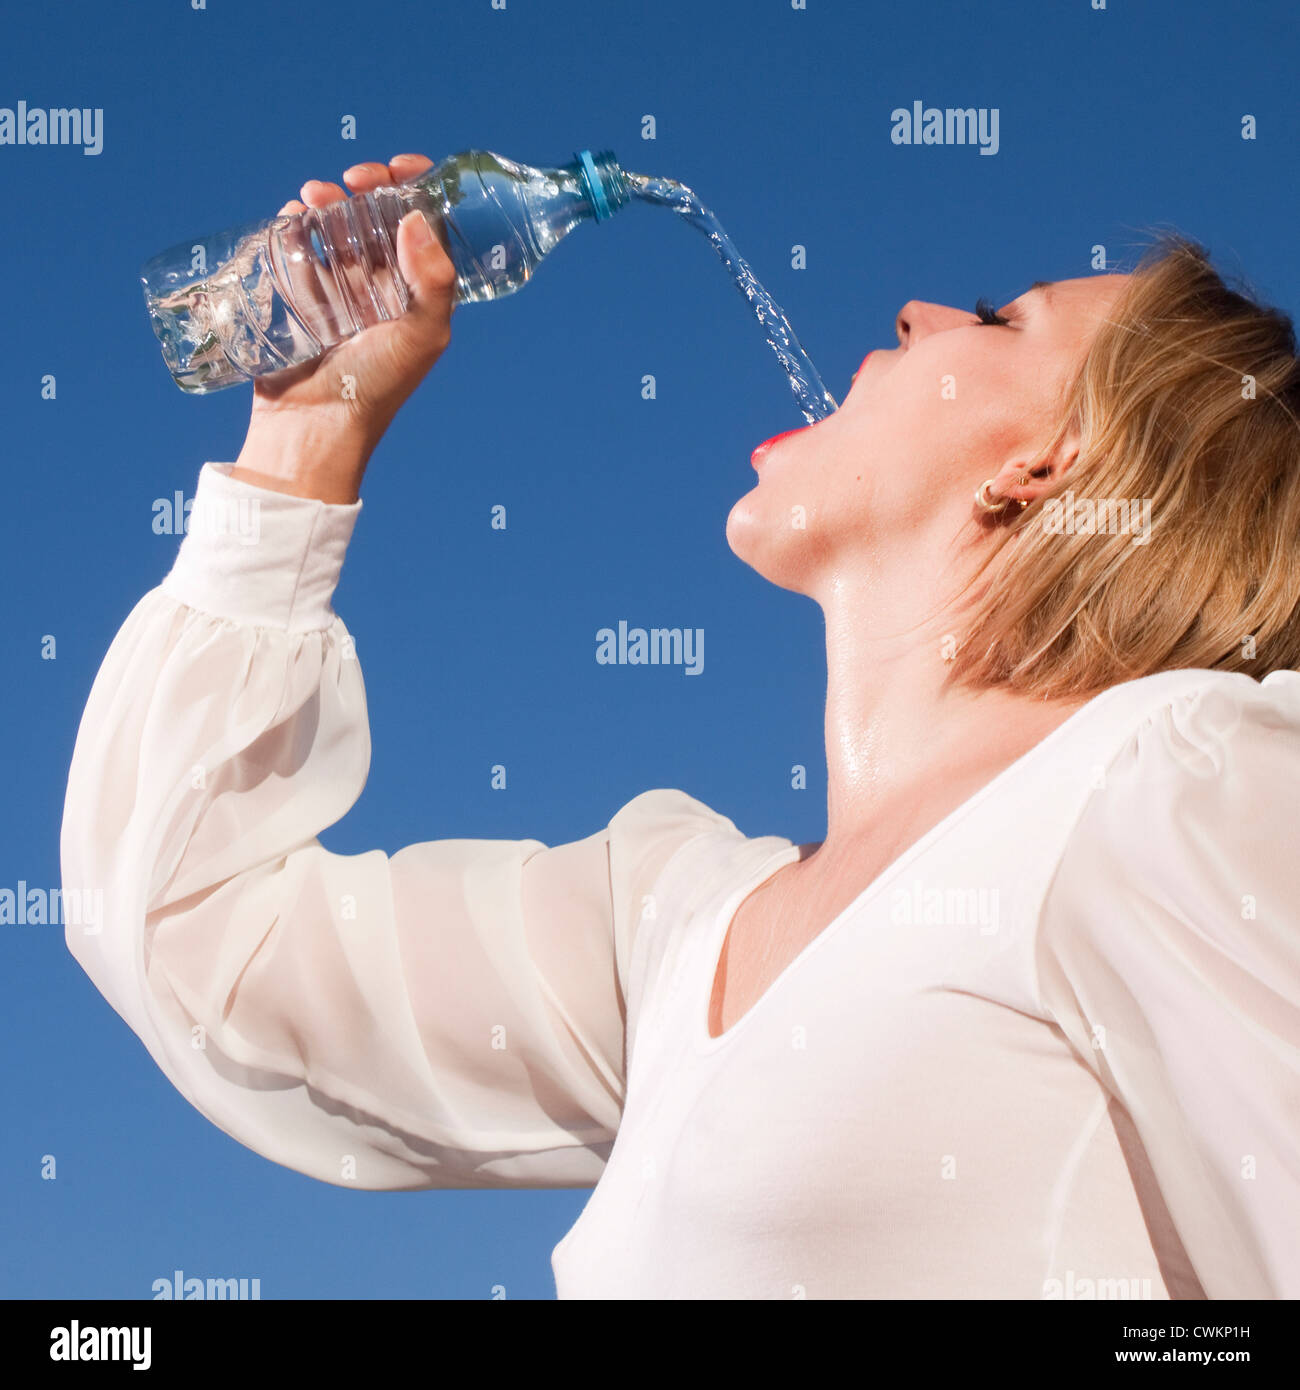 woman drinking some water - Stock Image